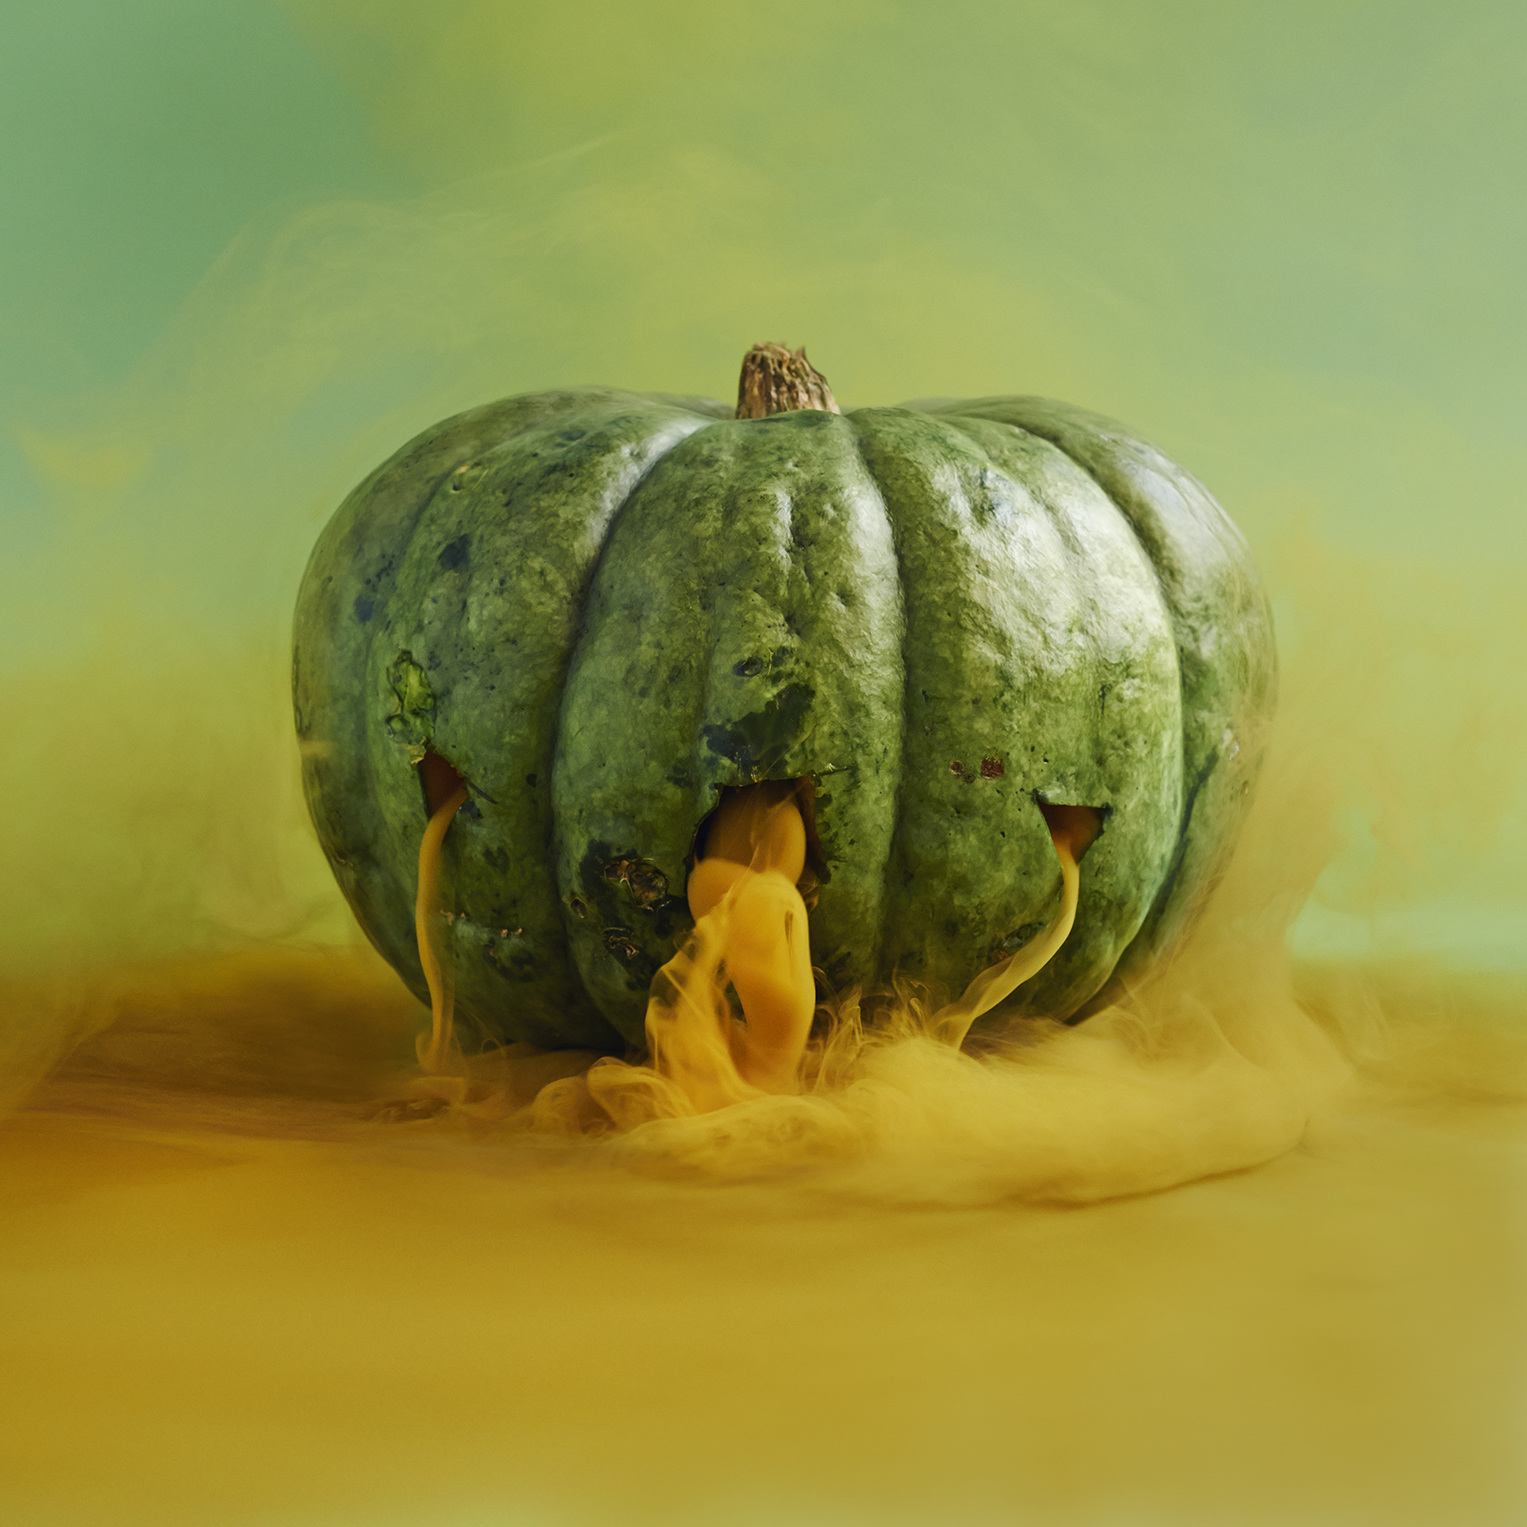 05-green_pumpkin_1527.jpg